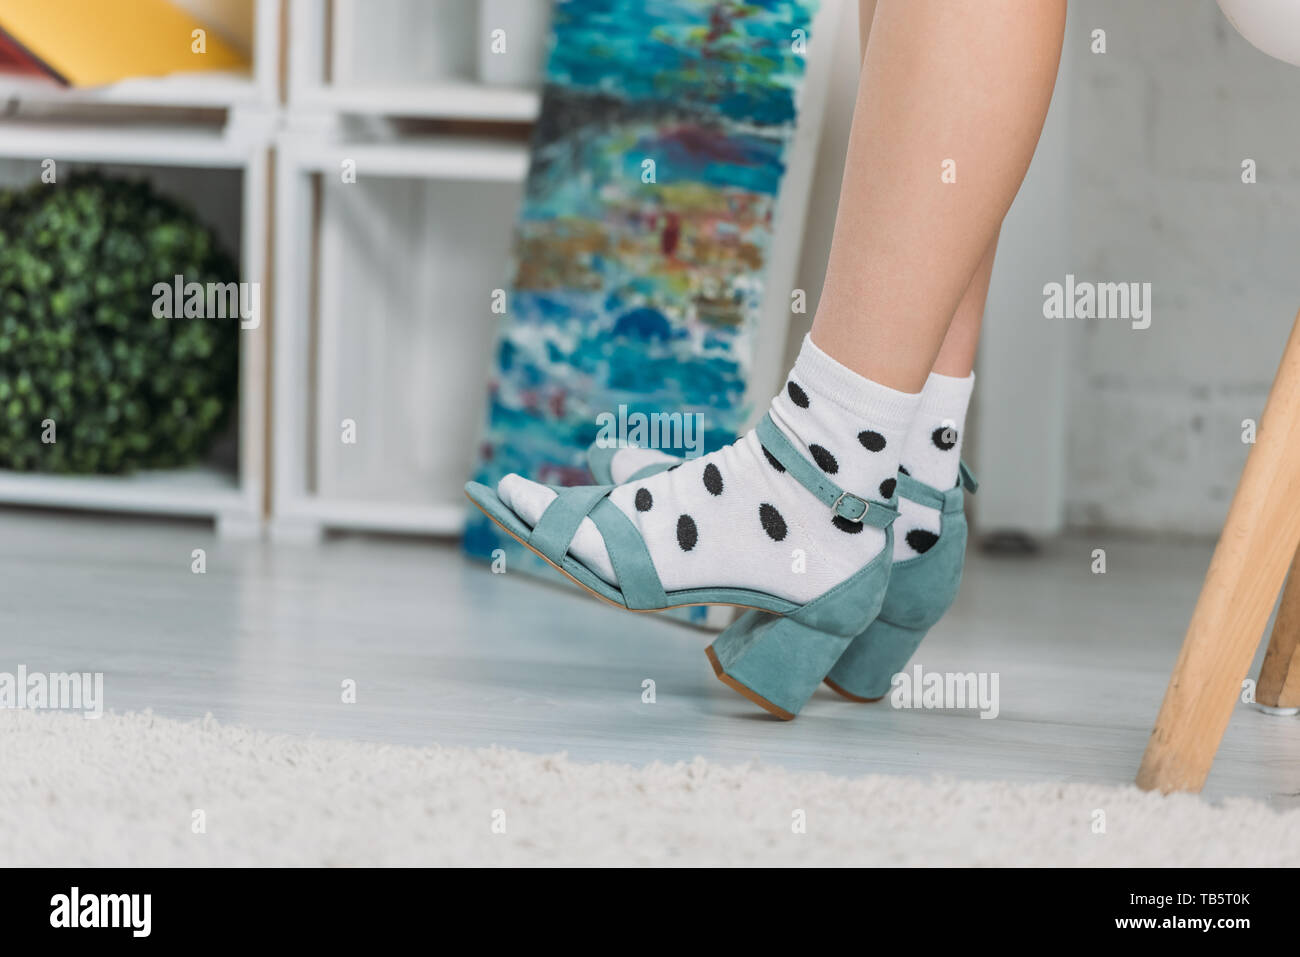 Socks With Sandals High Resolution Stock Photography And Images Alamy